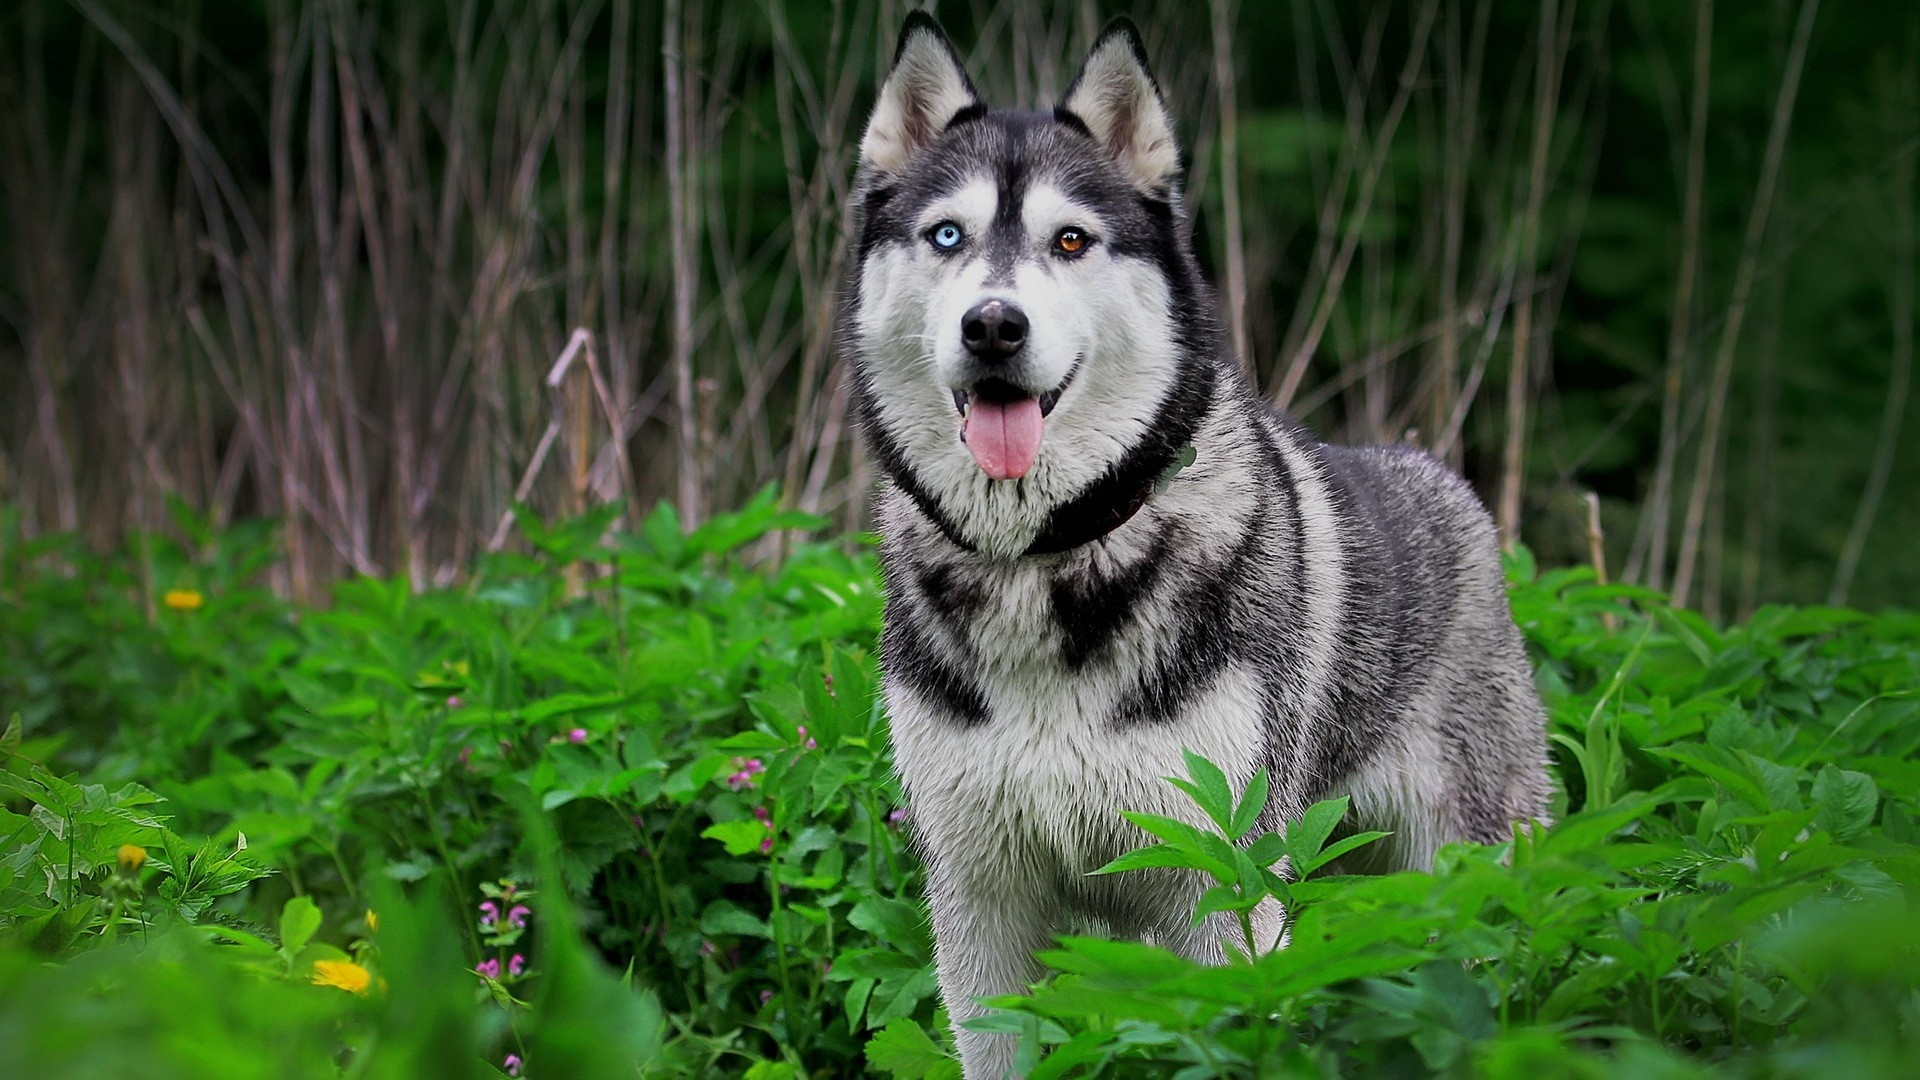 1080 Huky Puppies: Fonds D'écran Chien Husky, Nature, Animaux 1920x1080 Full